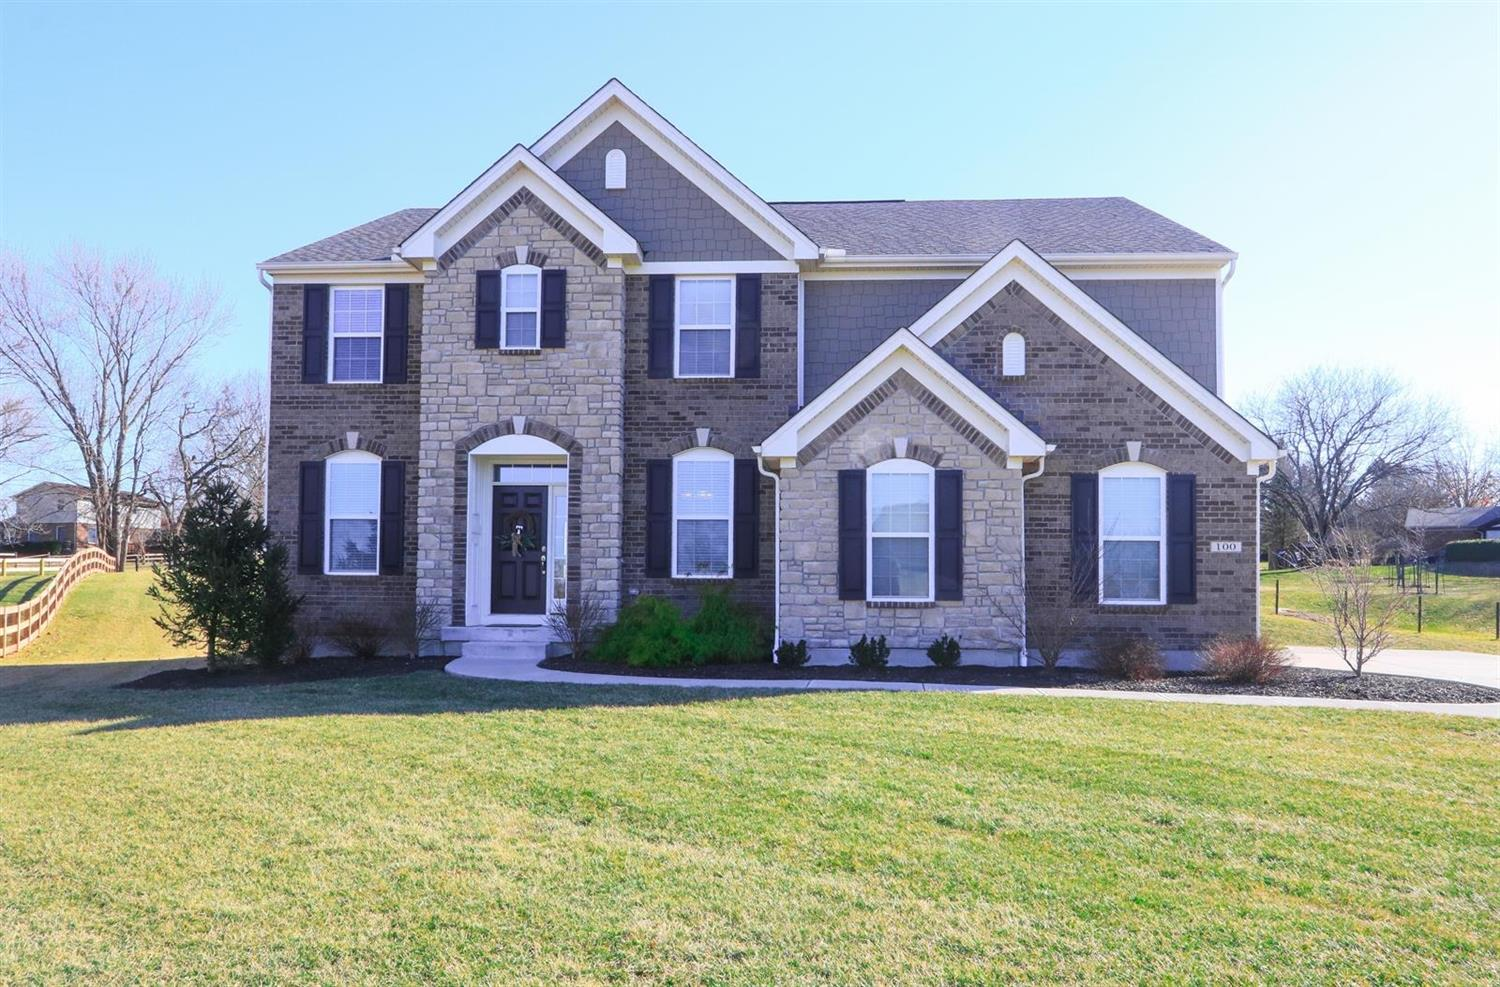 100 jacobs ct loveland oh 45140 mls 1611637 coldwell banker rh coldwellbankerhomes com